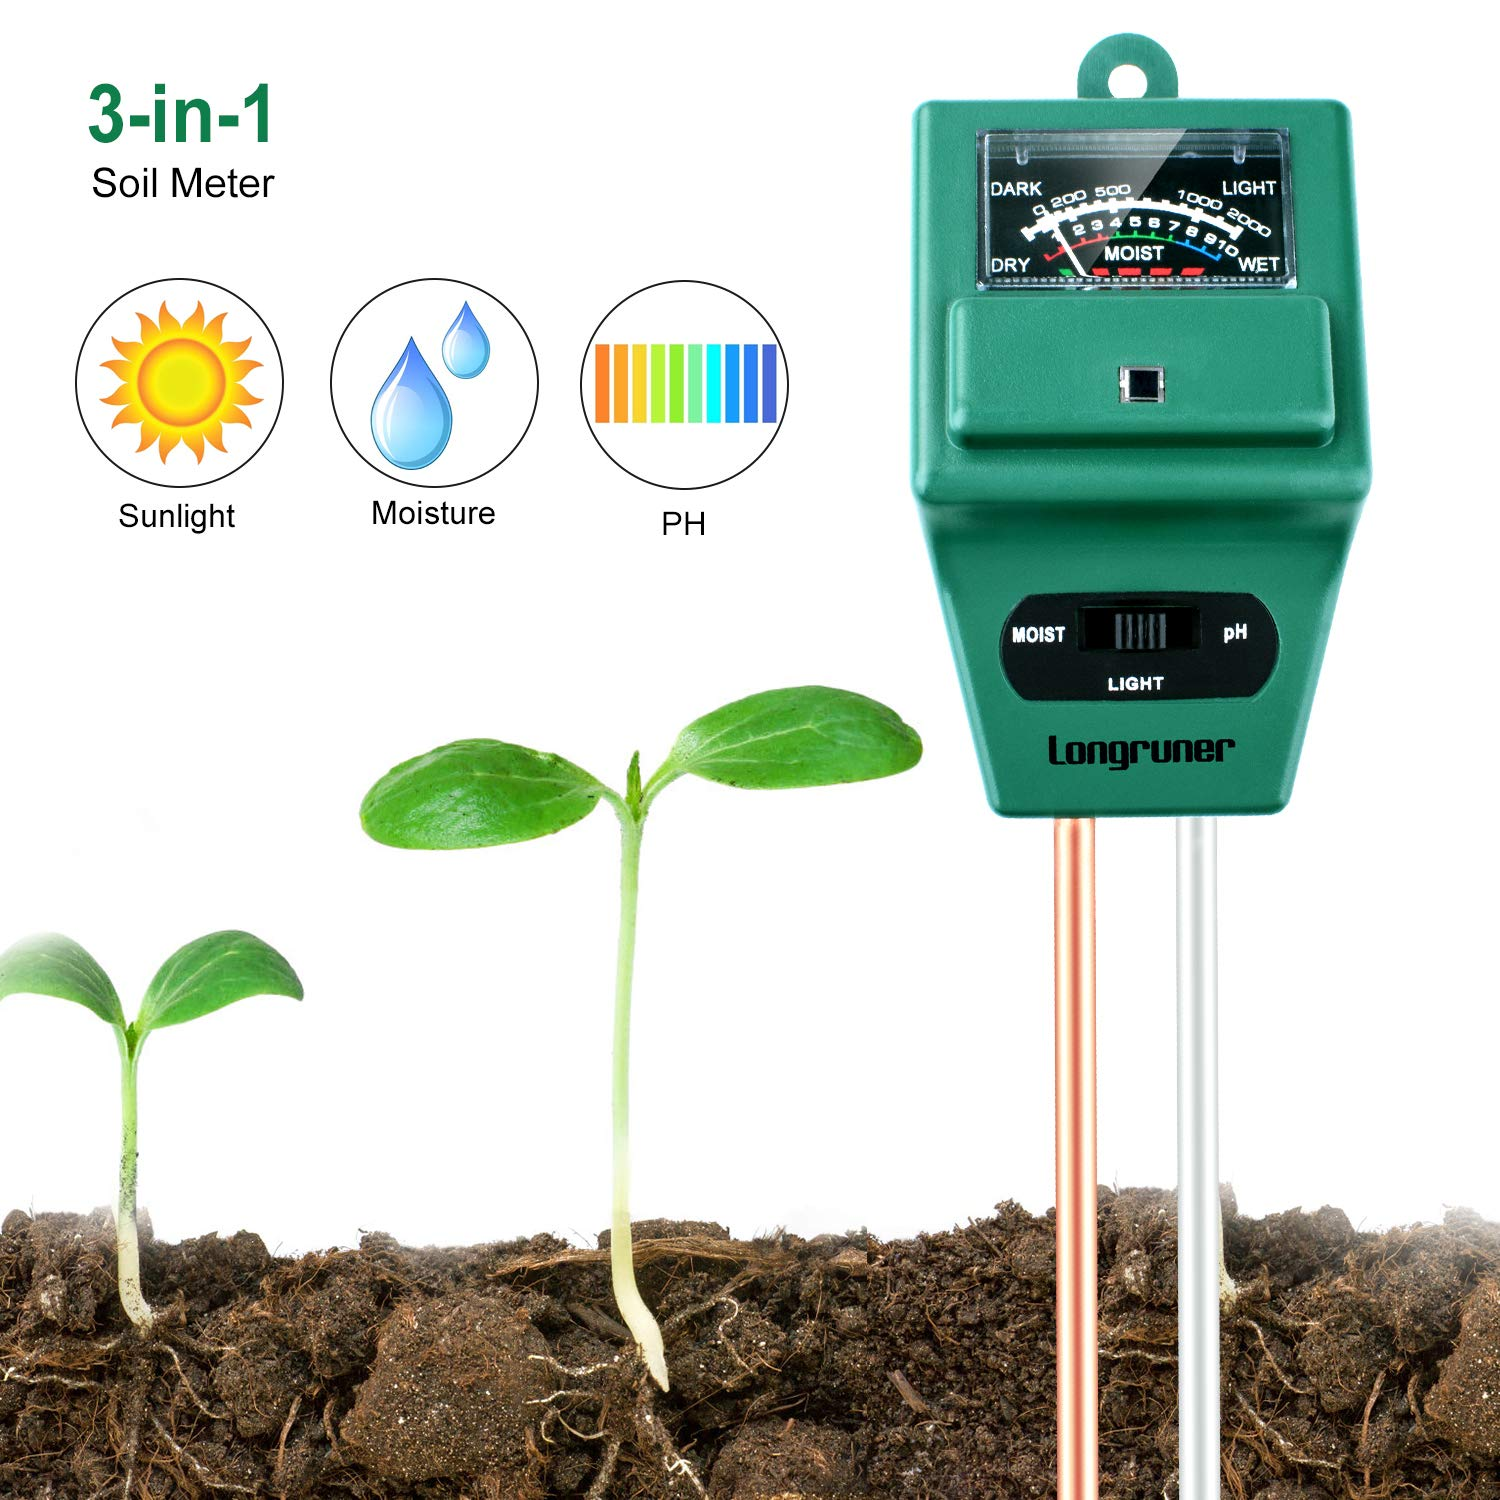 Longruner Soil Moisture PH Meter, 3-in-1 Plant Moisture Sensor Meter/Light/PH Tester for Home, Garden, Lawn, Farm, Indoor/Outdoor(No Battery Needed) LKP03